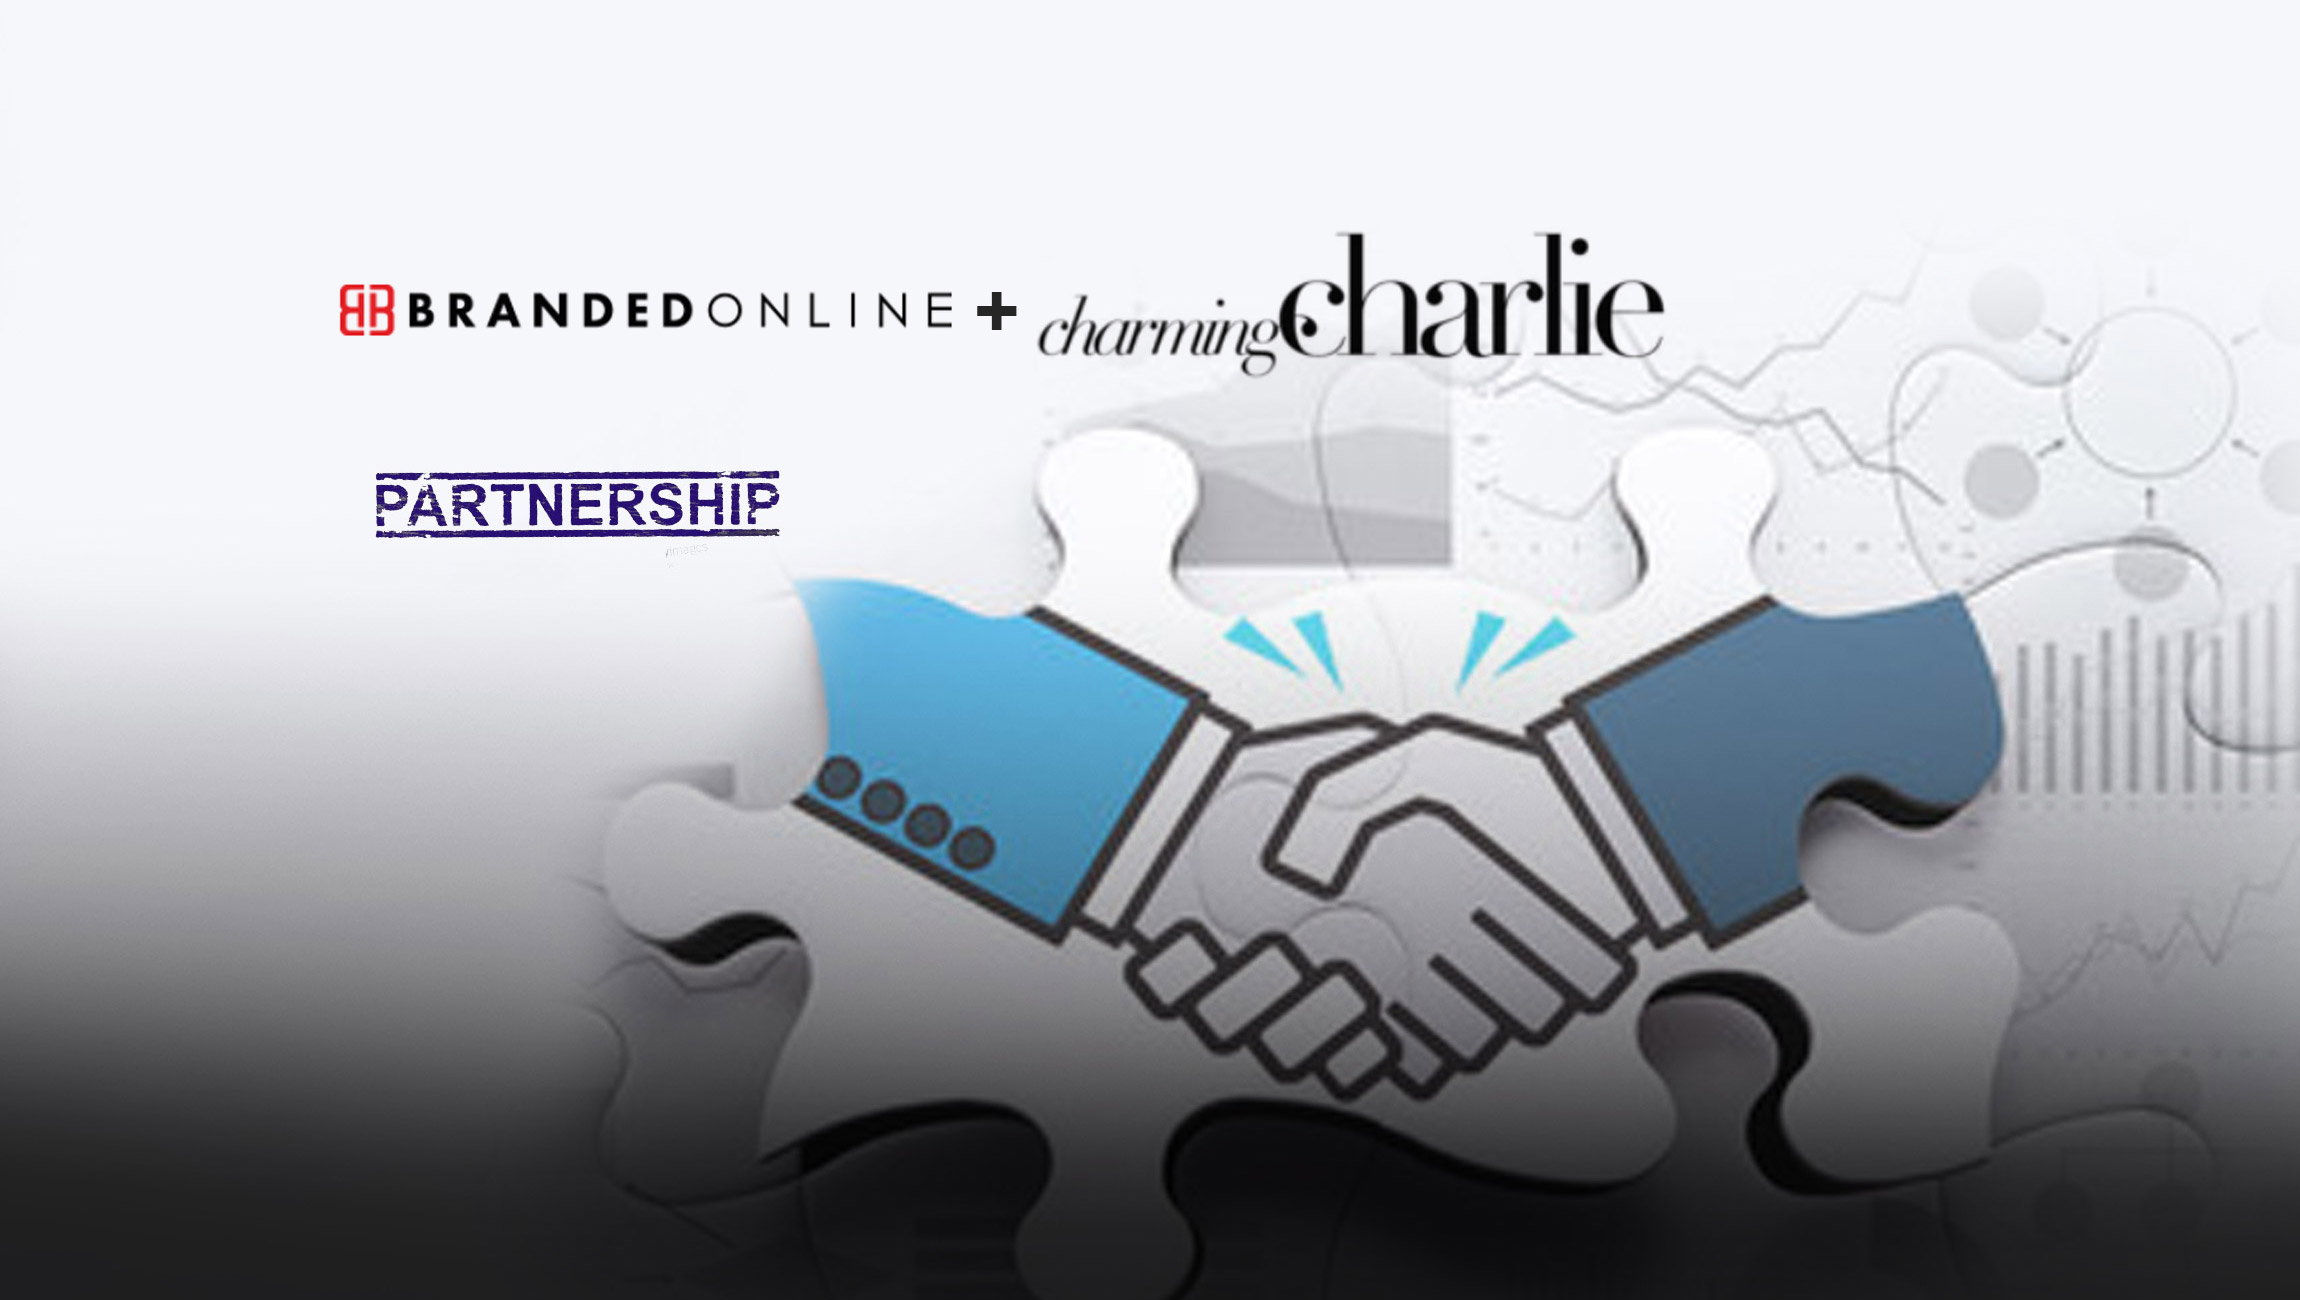 Branded Online Announces Partnership With Charming Charlie